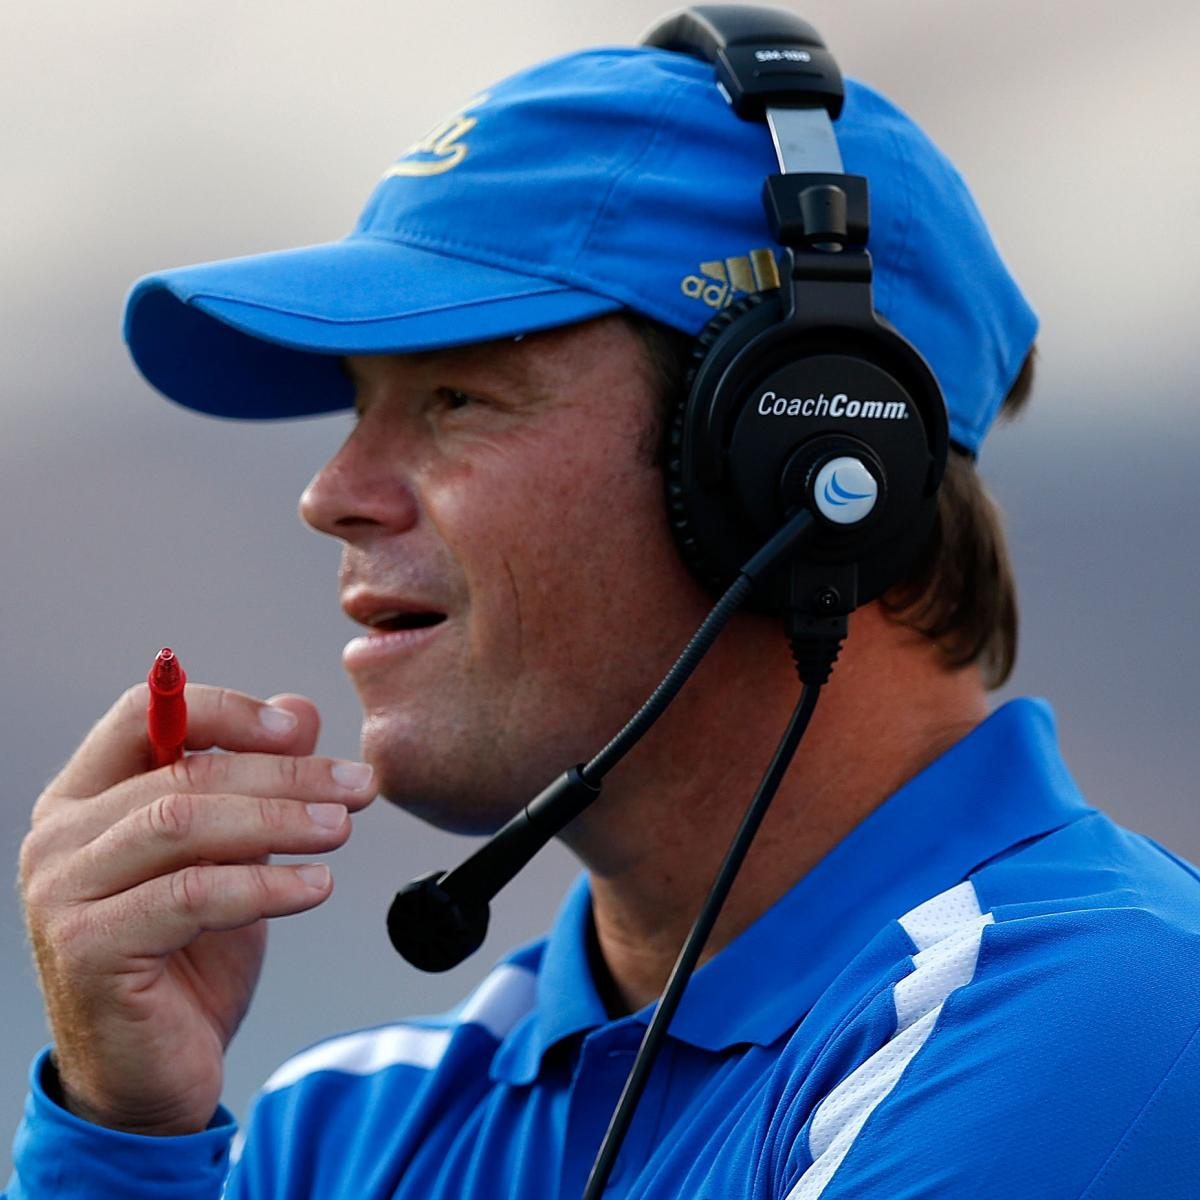 San Diego Chargers Head Coaches: UCLA Head Coach Jim Mora Has Been Contacted By The San